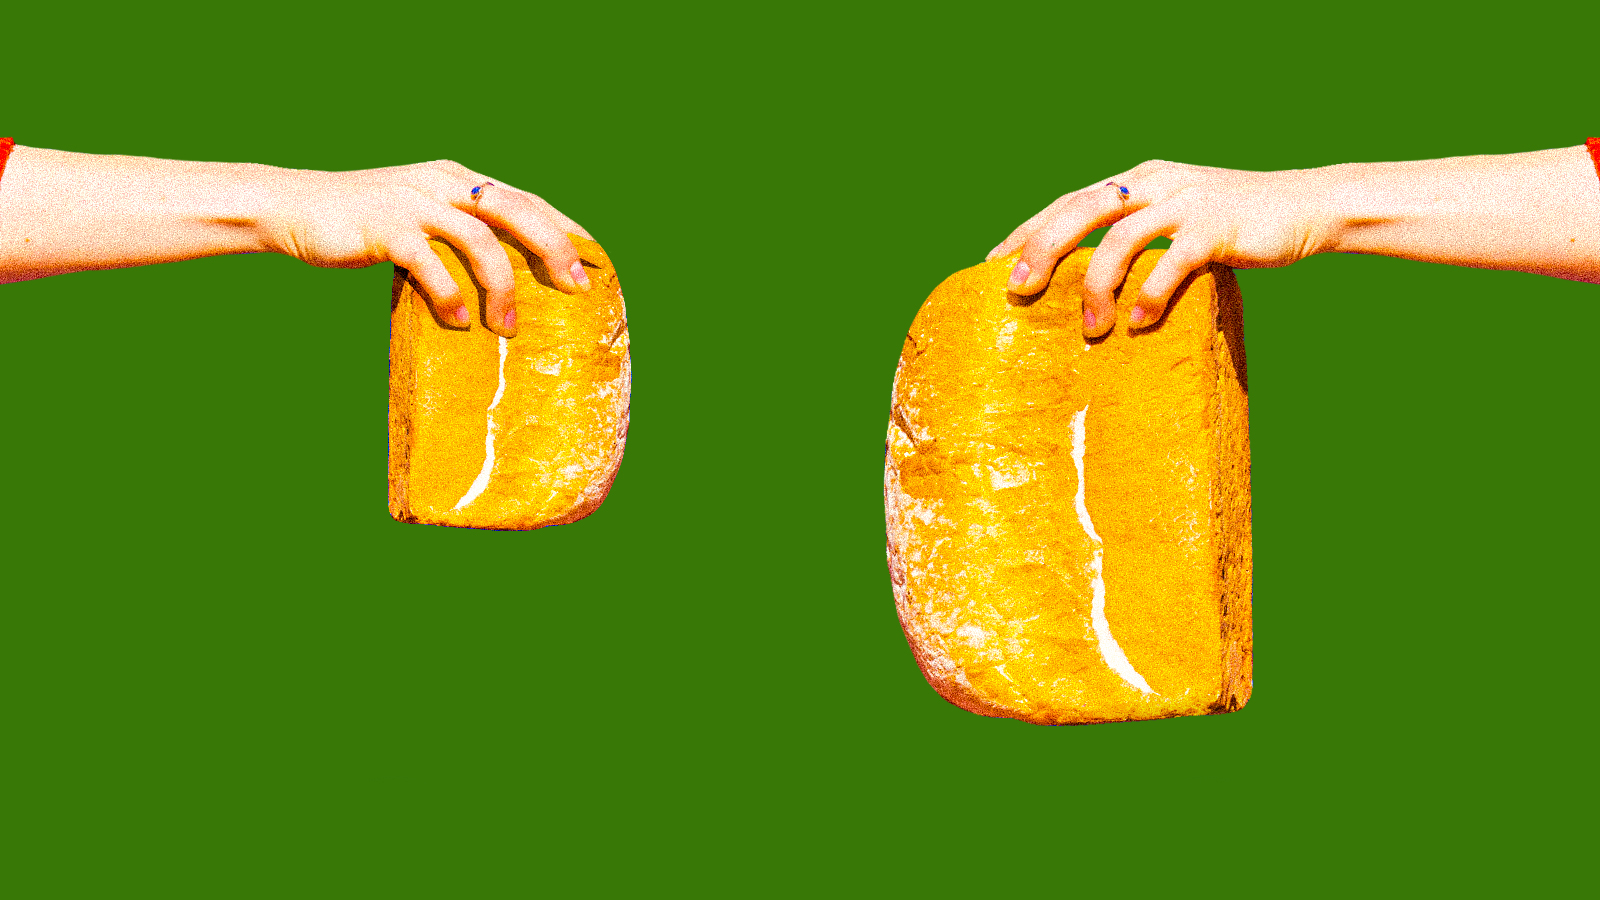 I quit eating bread for a week and it had an insane effect on my body